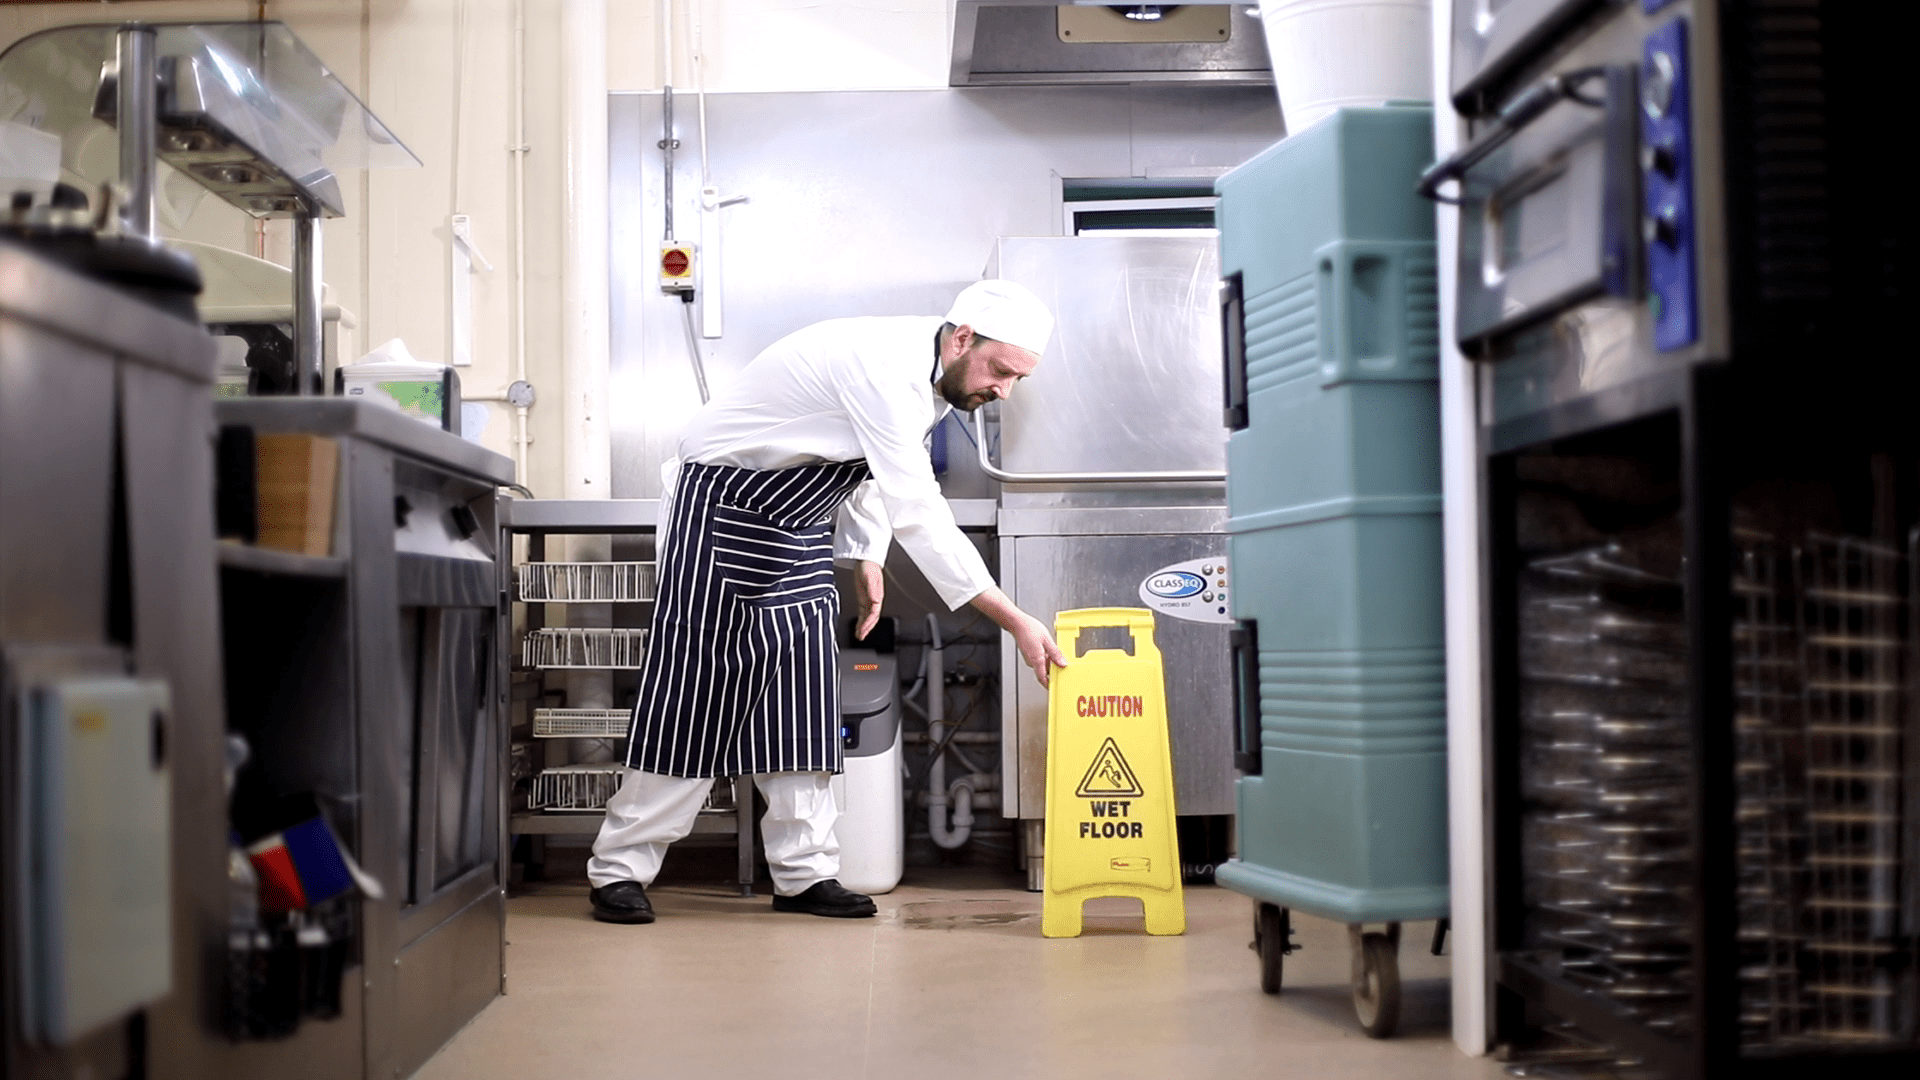 Chef in the kitchen putting out a 'caution wet floor' sign, taken from iHASCO's food safety and hygiene course.